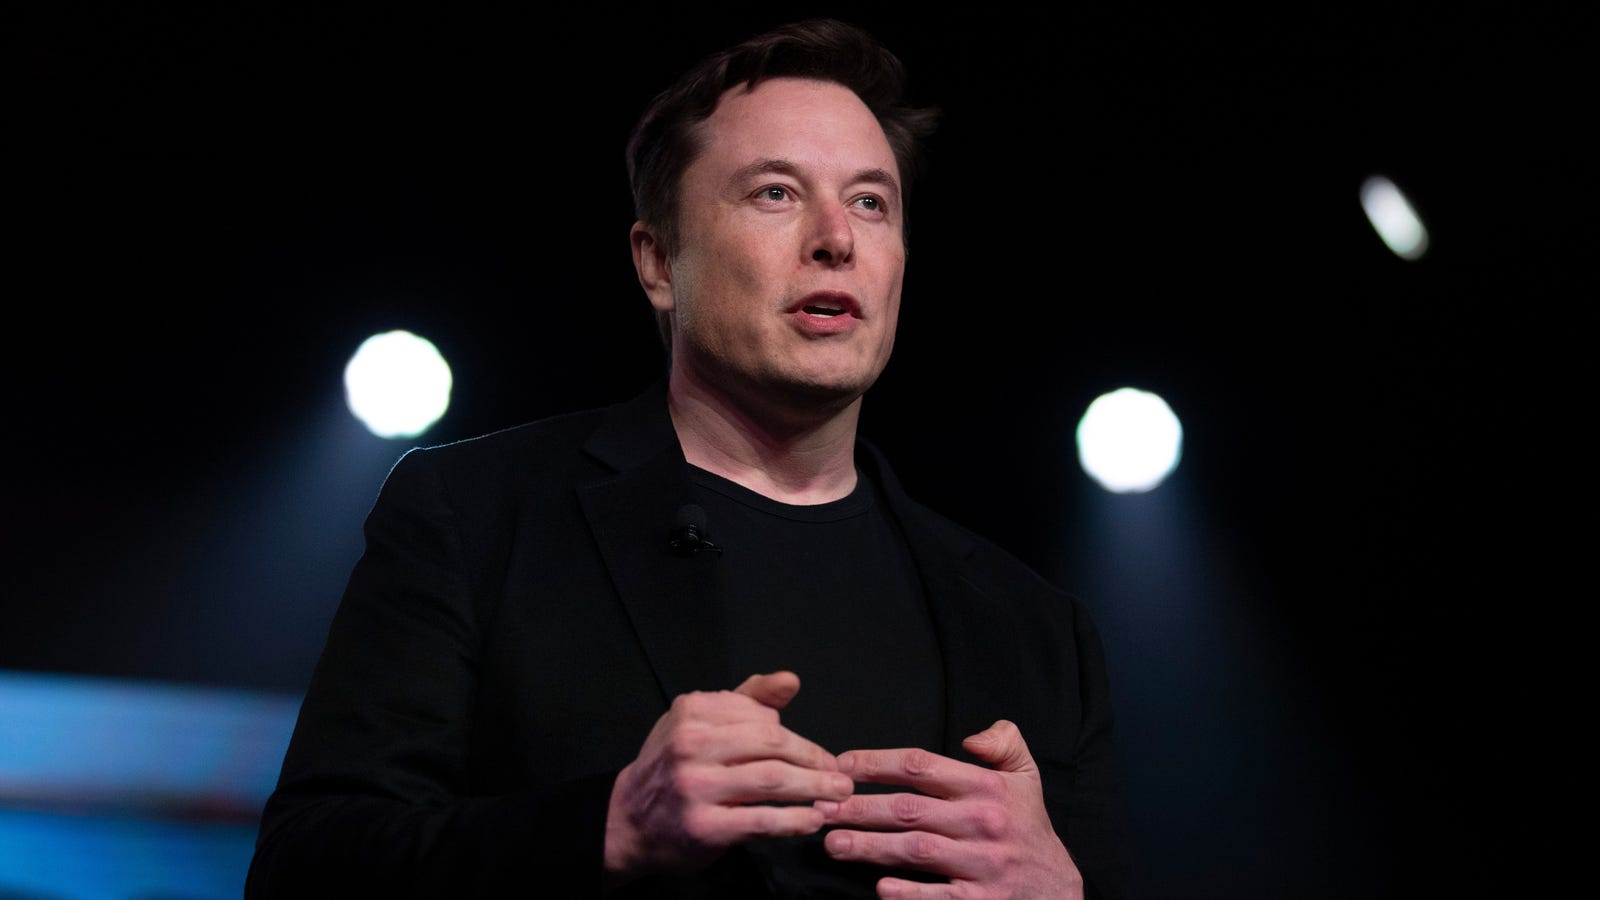 Elon Musk Is Going to Trial Over Bad 'Pedo Guy' Tweet